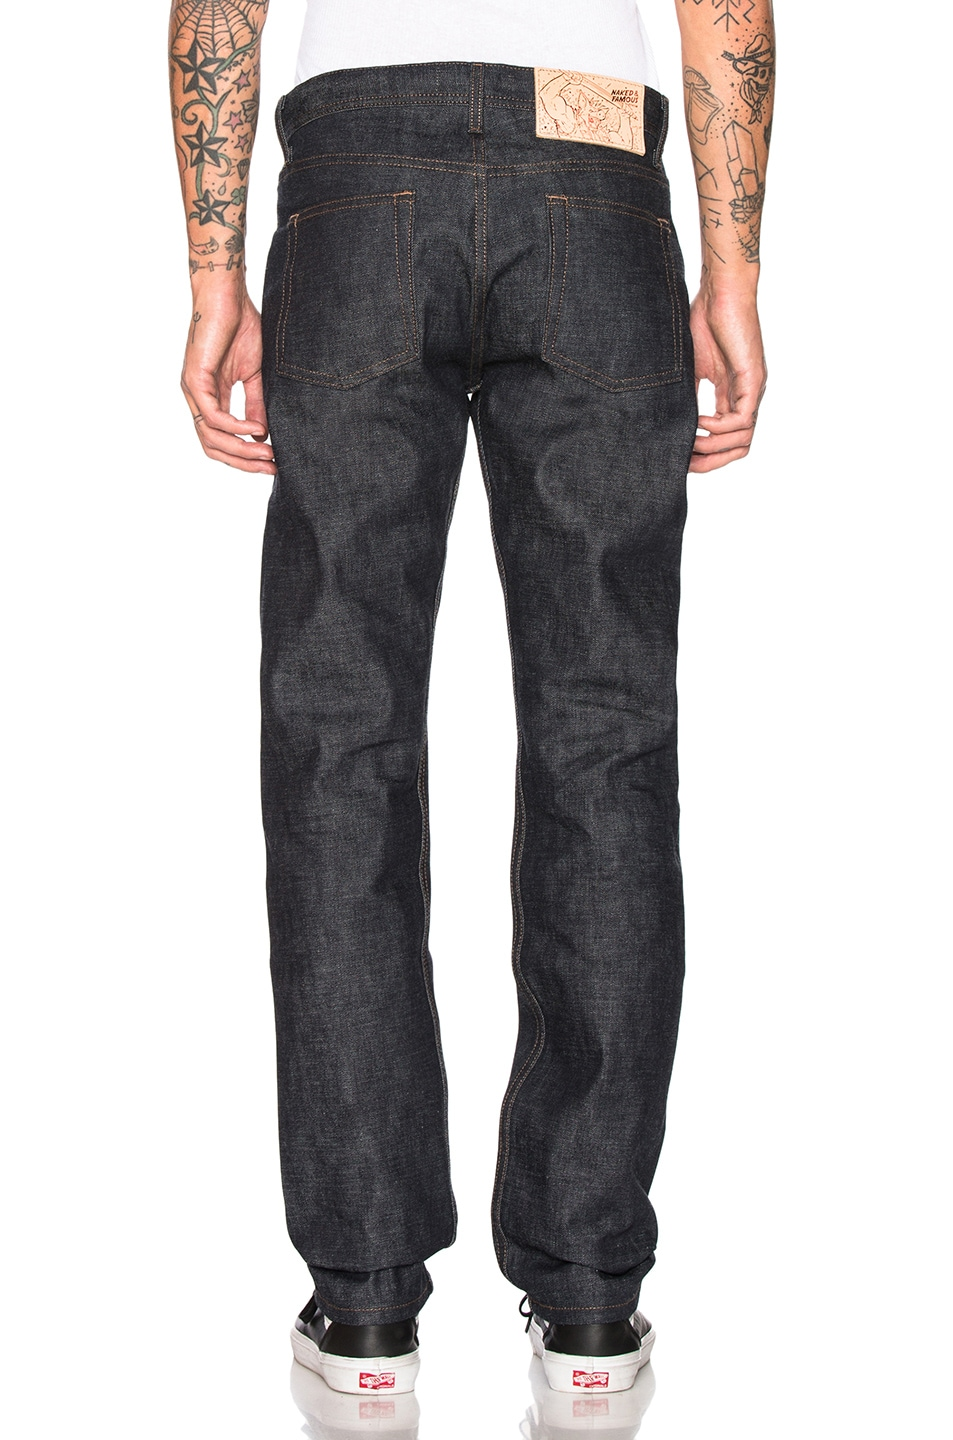 Naked & Famous Denim Weird Guy Jeans Chinese New Year Earth Pig chic